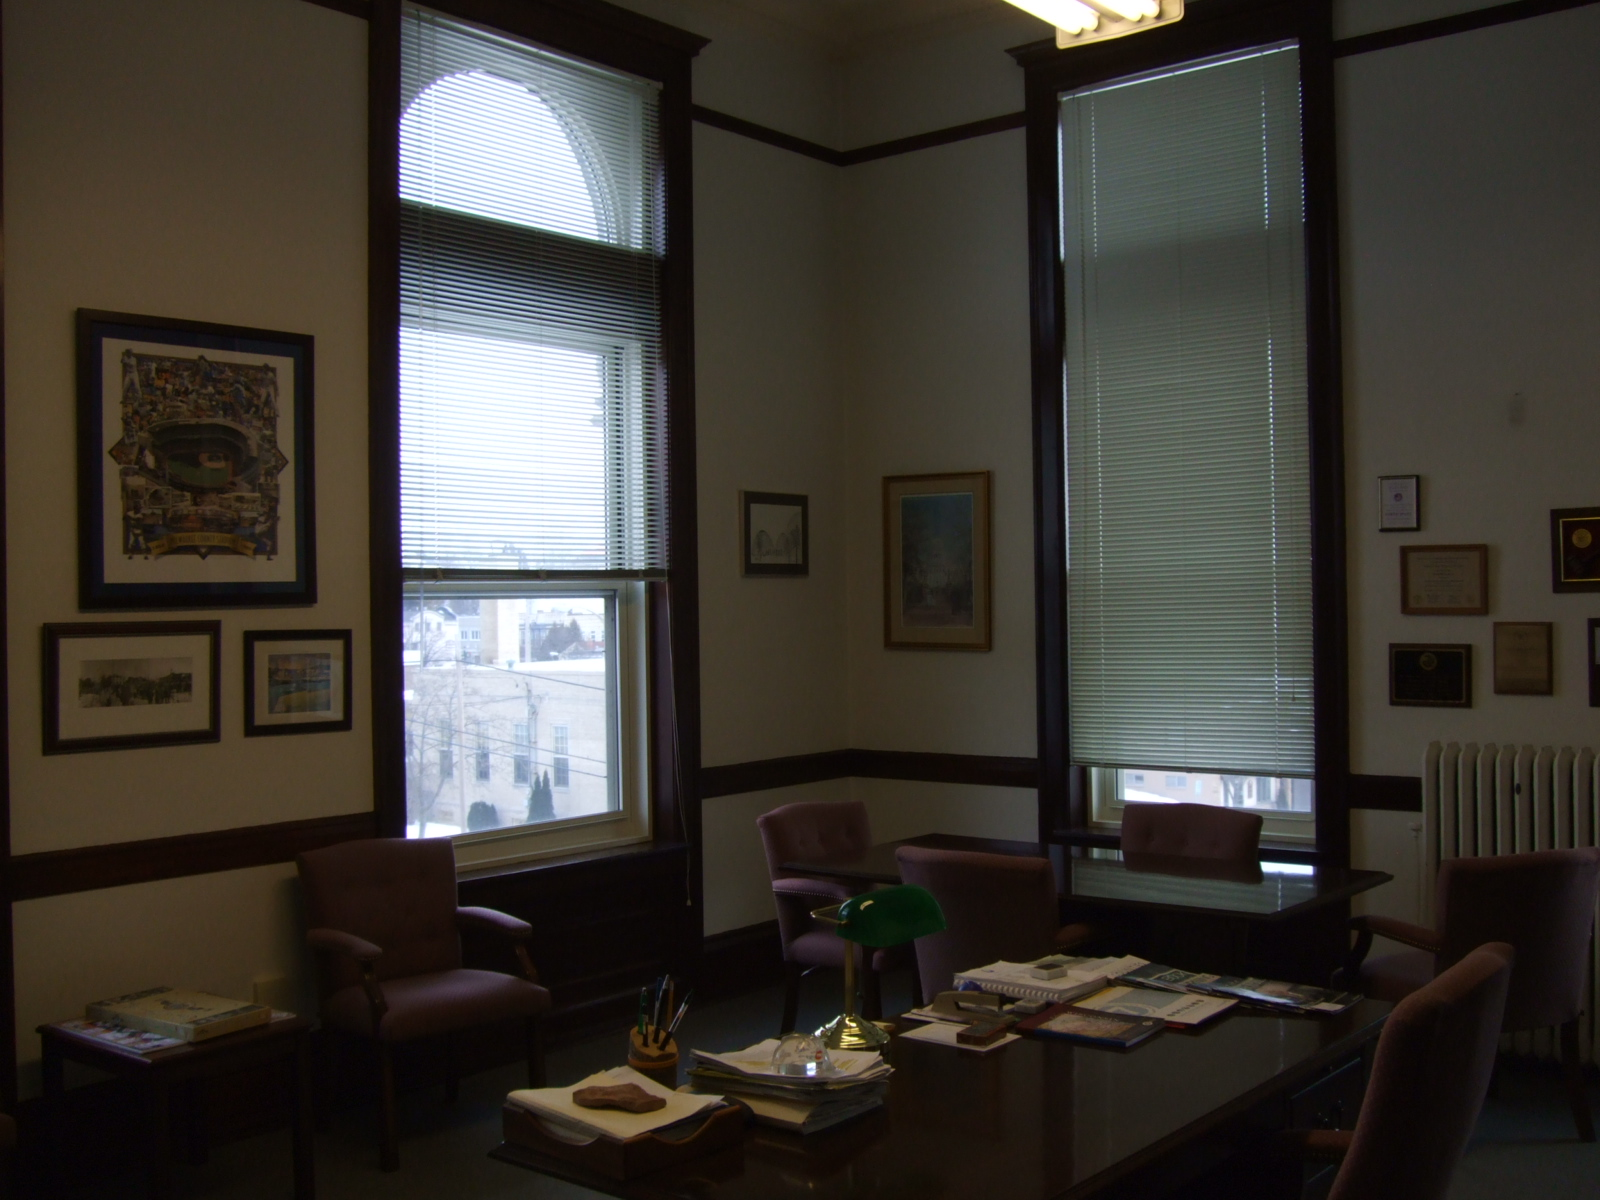 2010 - Administrator's Office